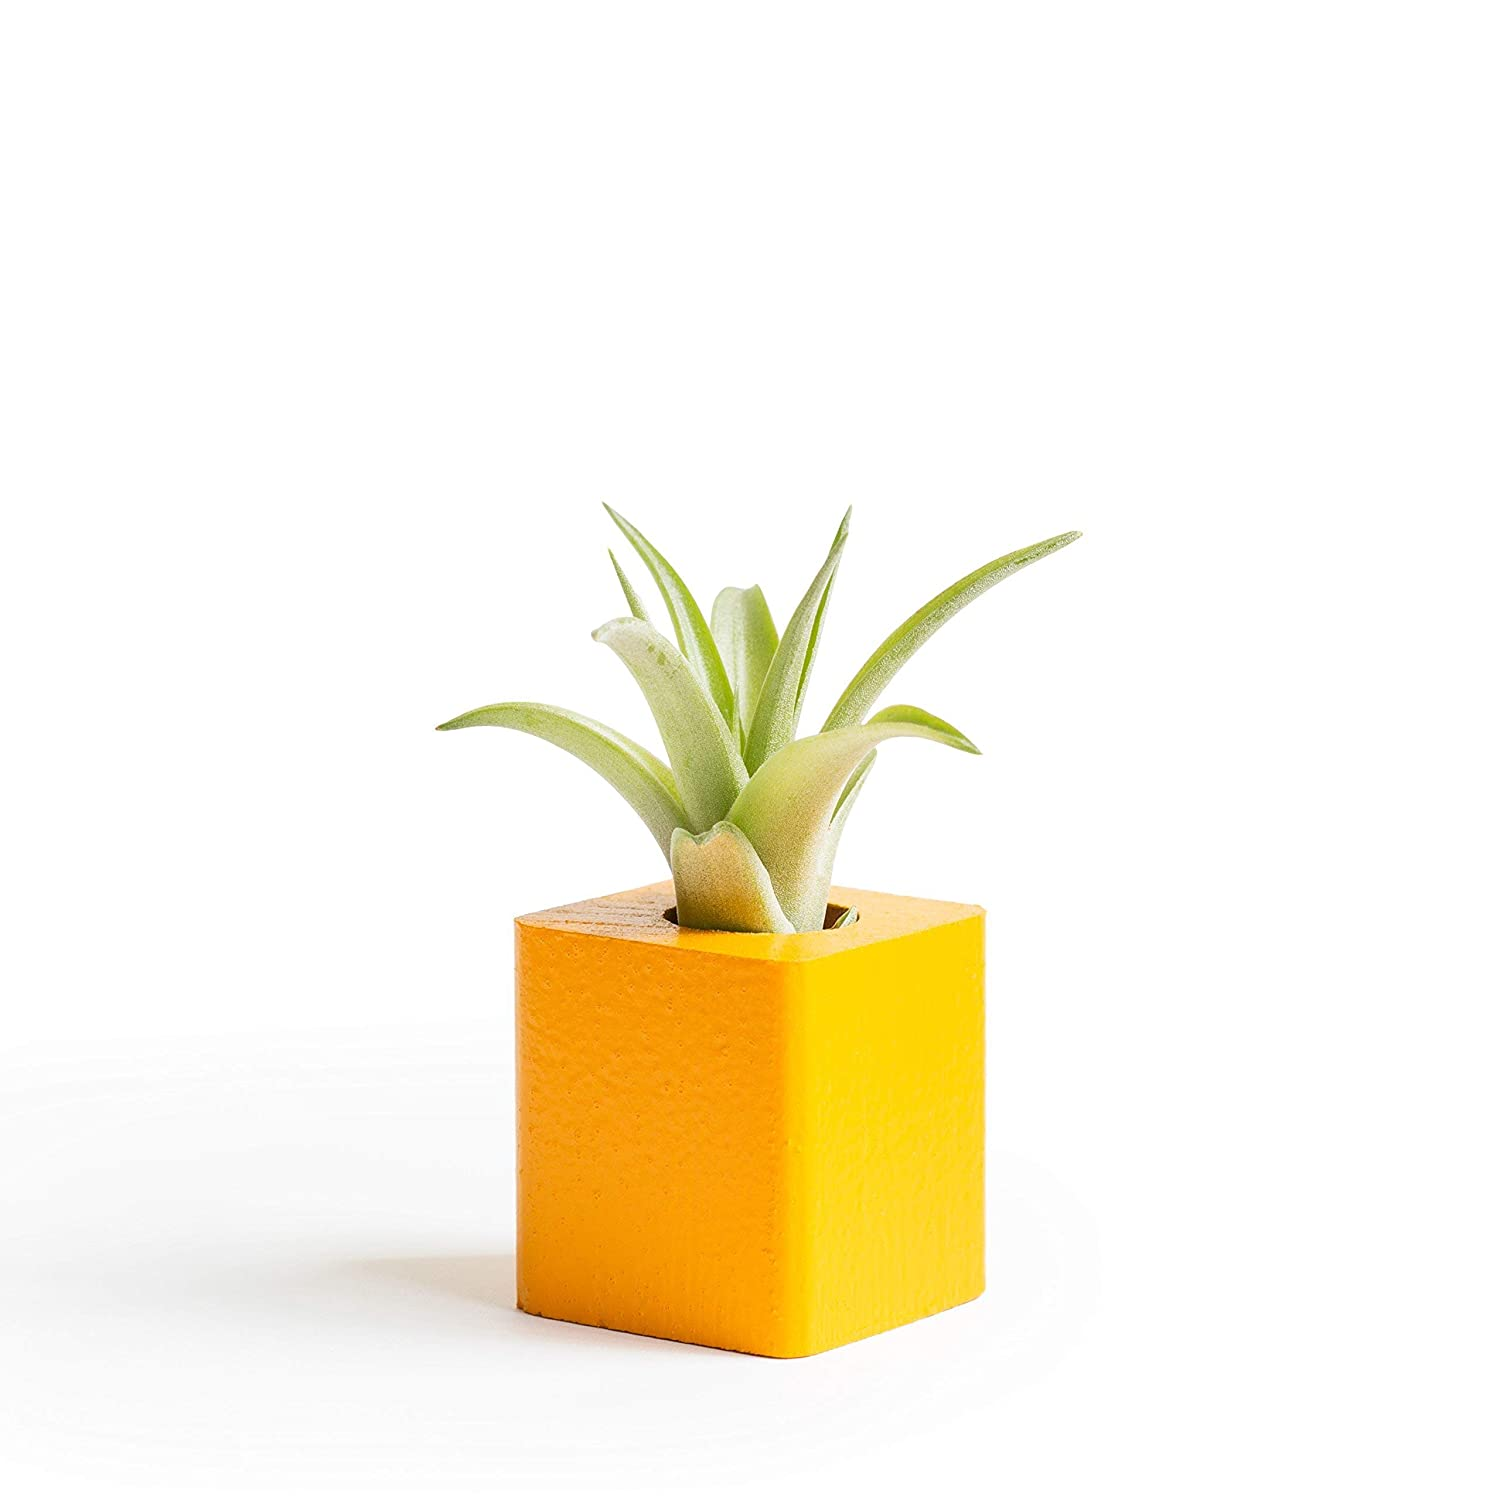 Airplant Display Small Plant Gift Air Plant Magnet Office Magnet Magnetic Board Magnet Girlfriend Gift Cute Office Gift Orange Refrigerator Plant Magnet